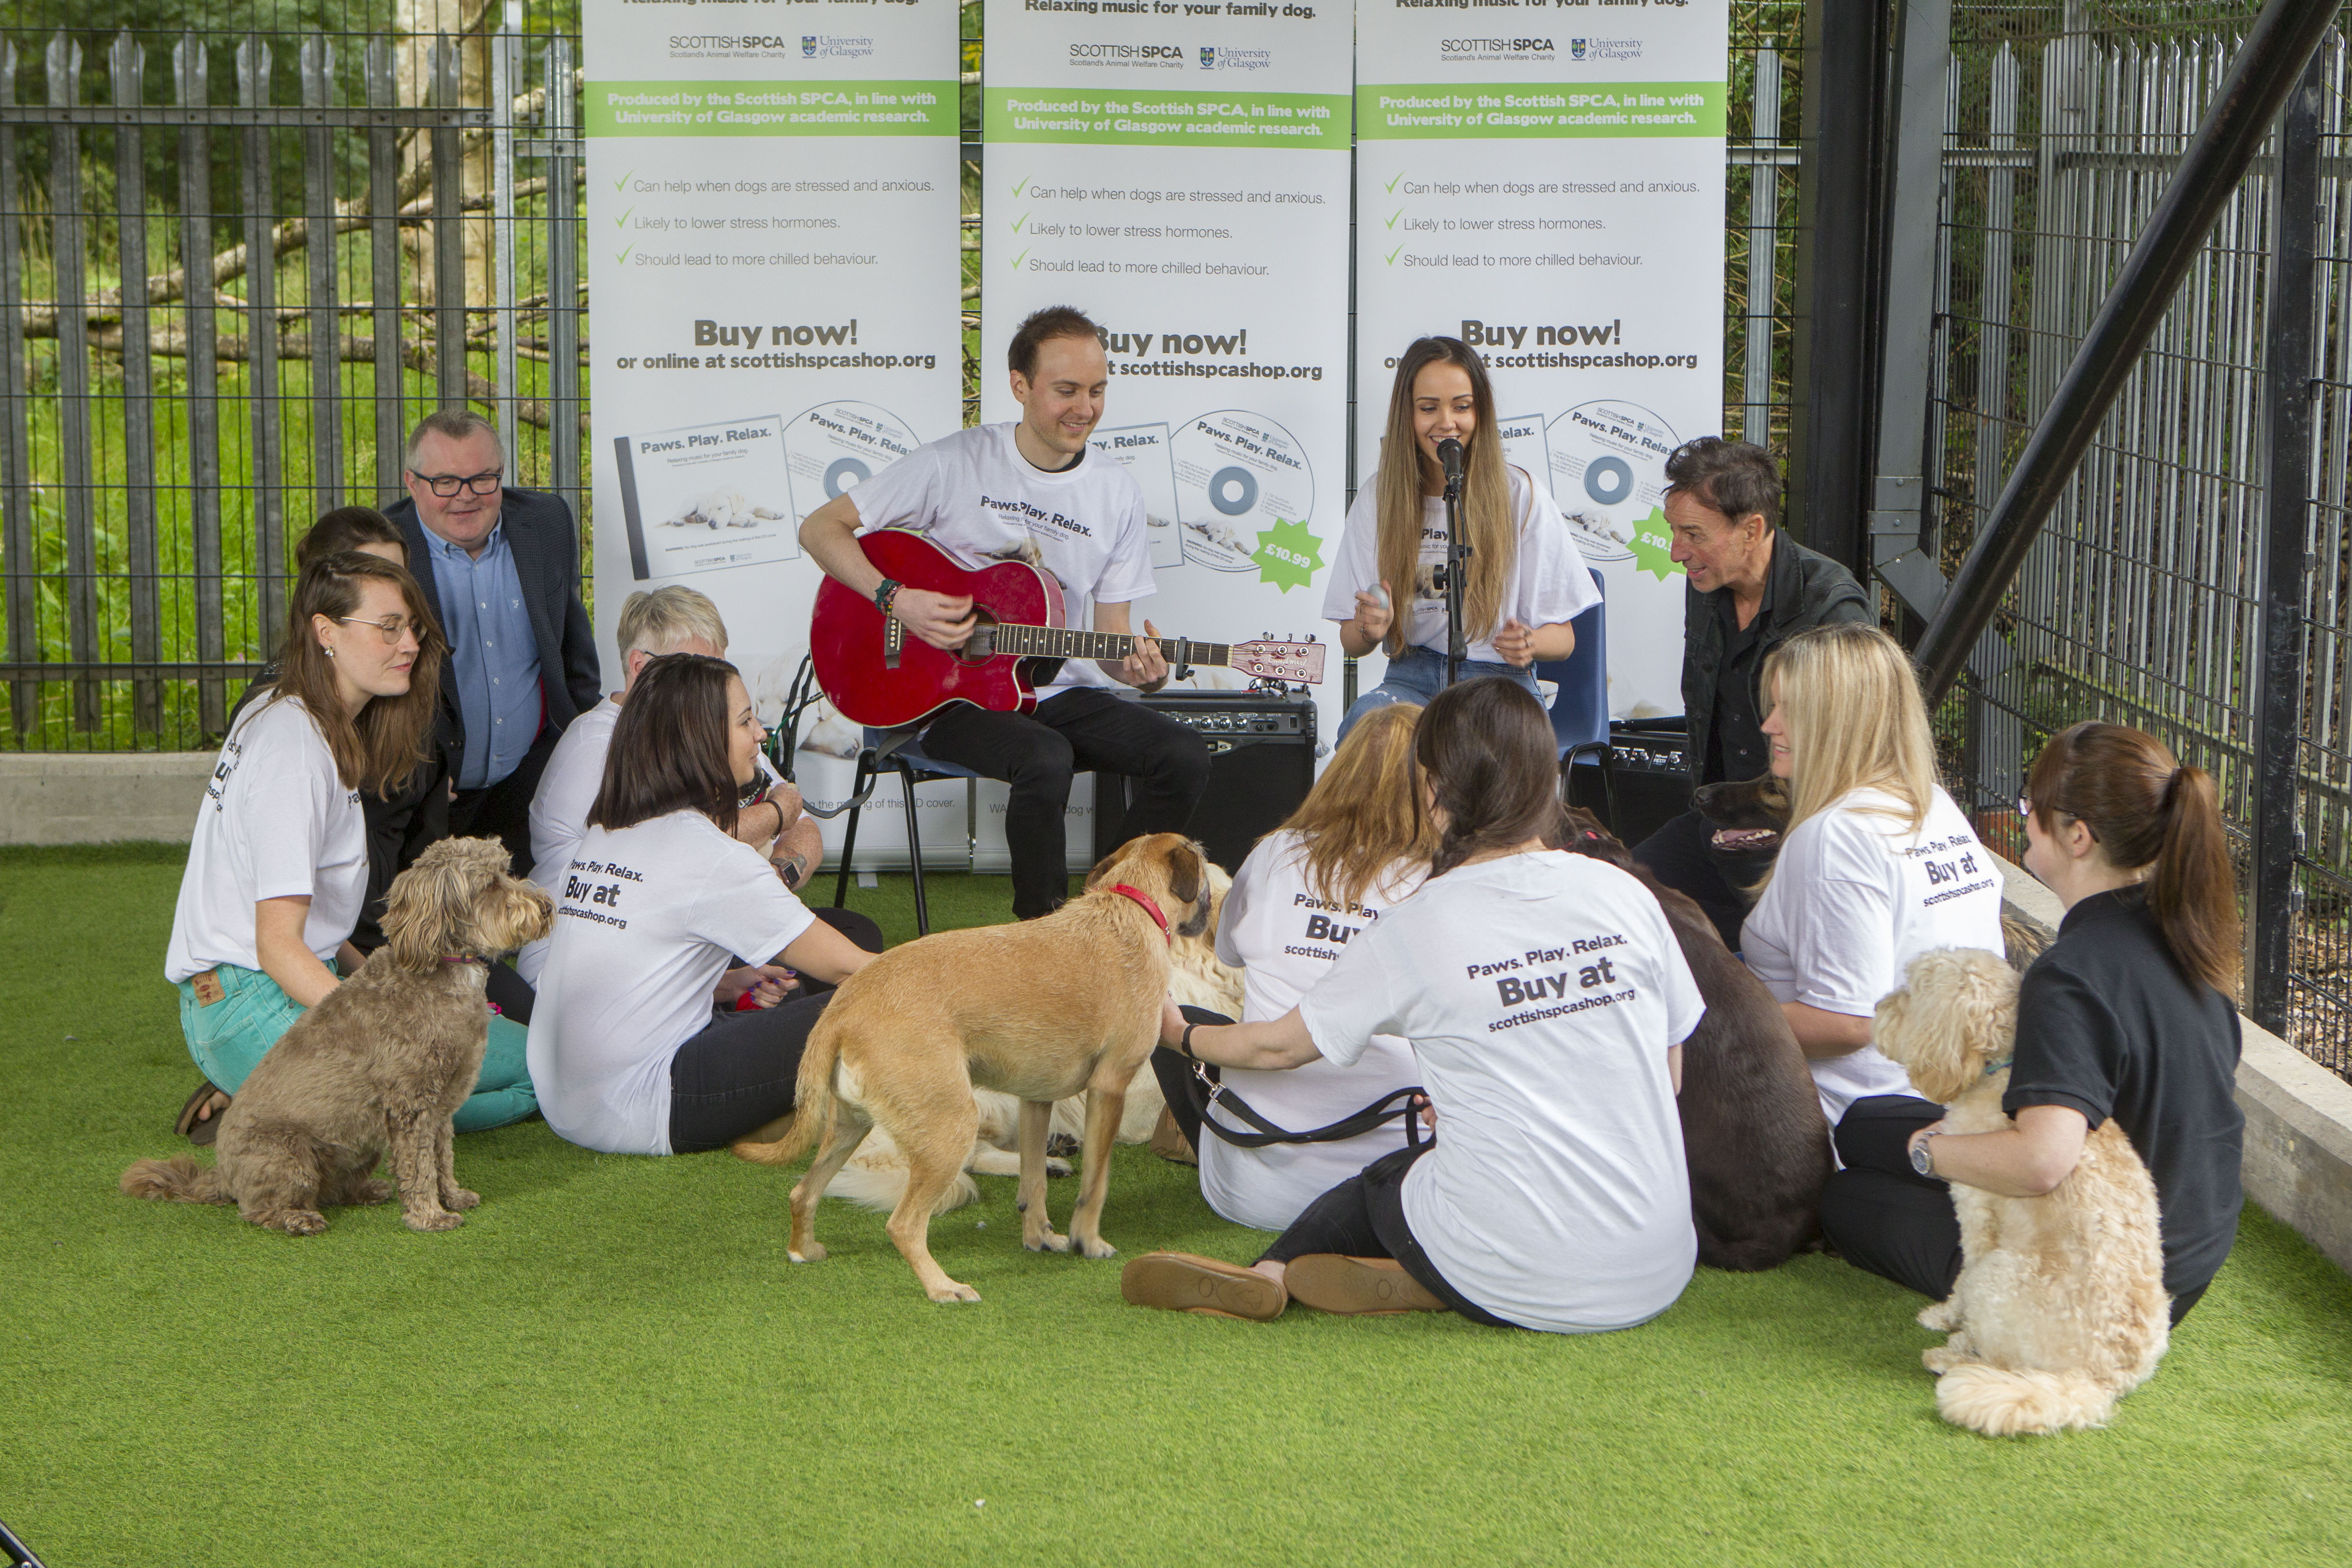 Due To High Demand The Scottish Spca Has Made Their Al Paws Play Relax Available To Download And Stream Through Spotify Itunes Google Play And